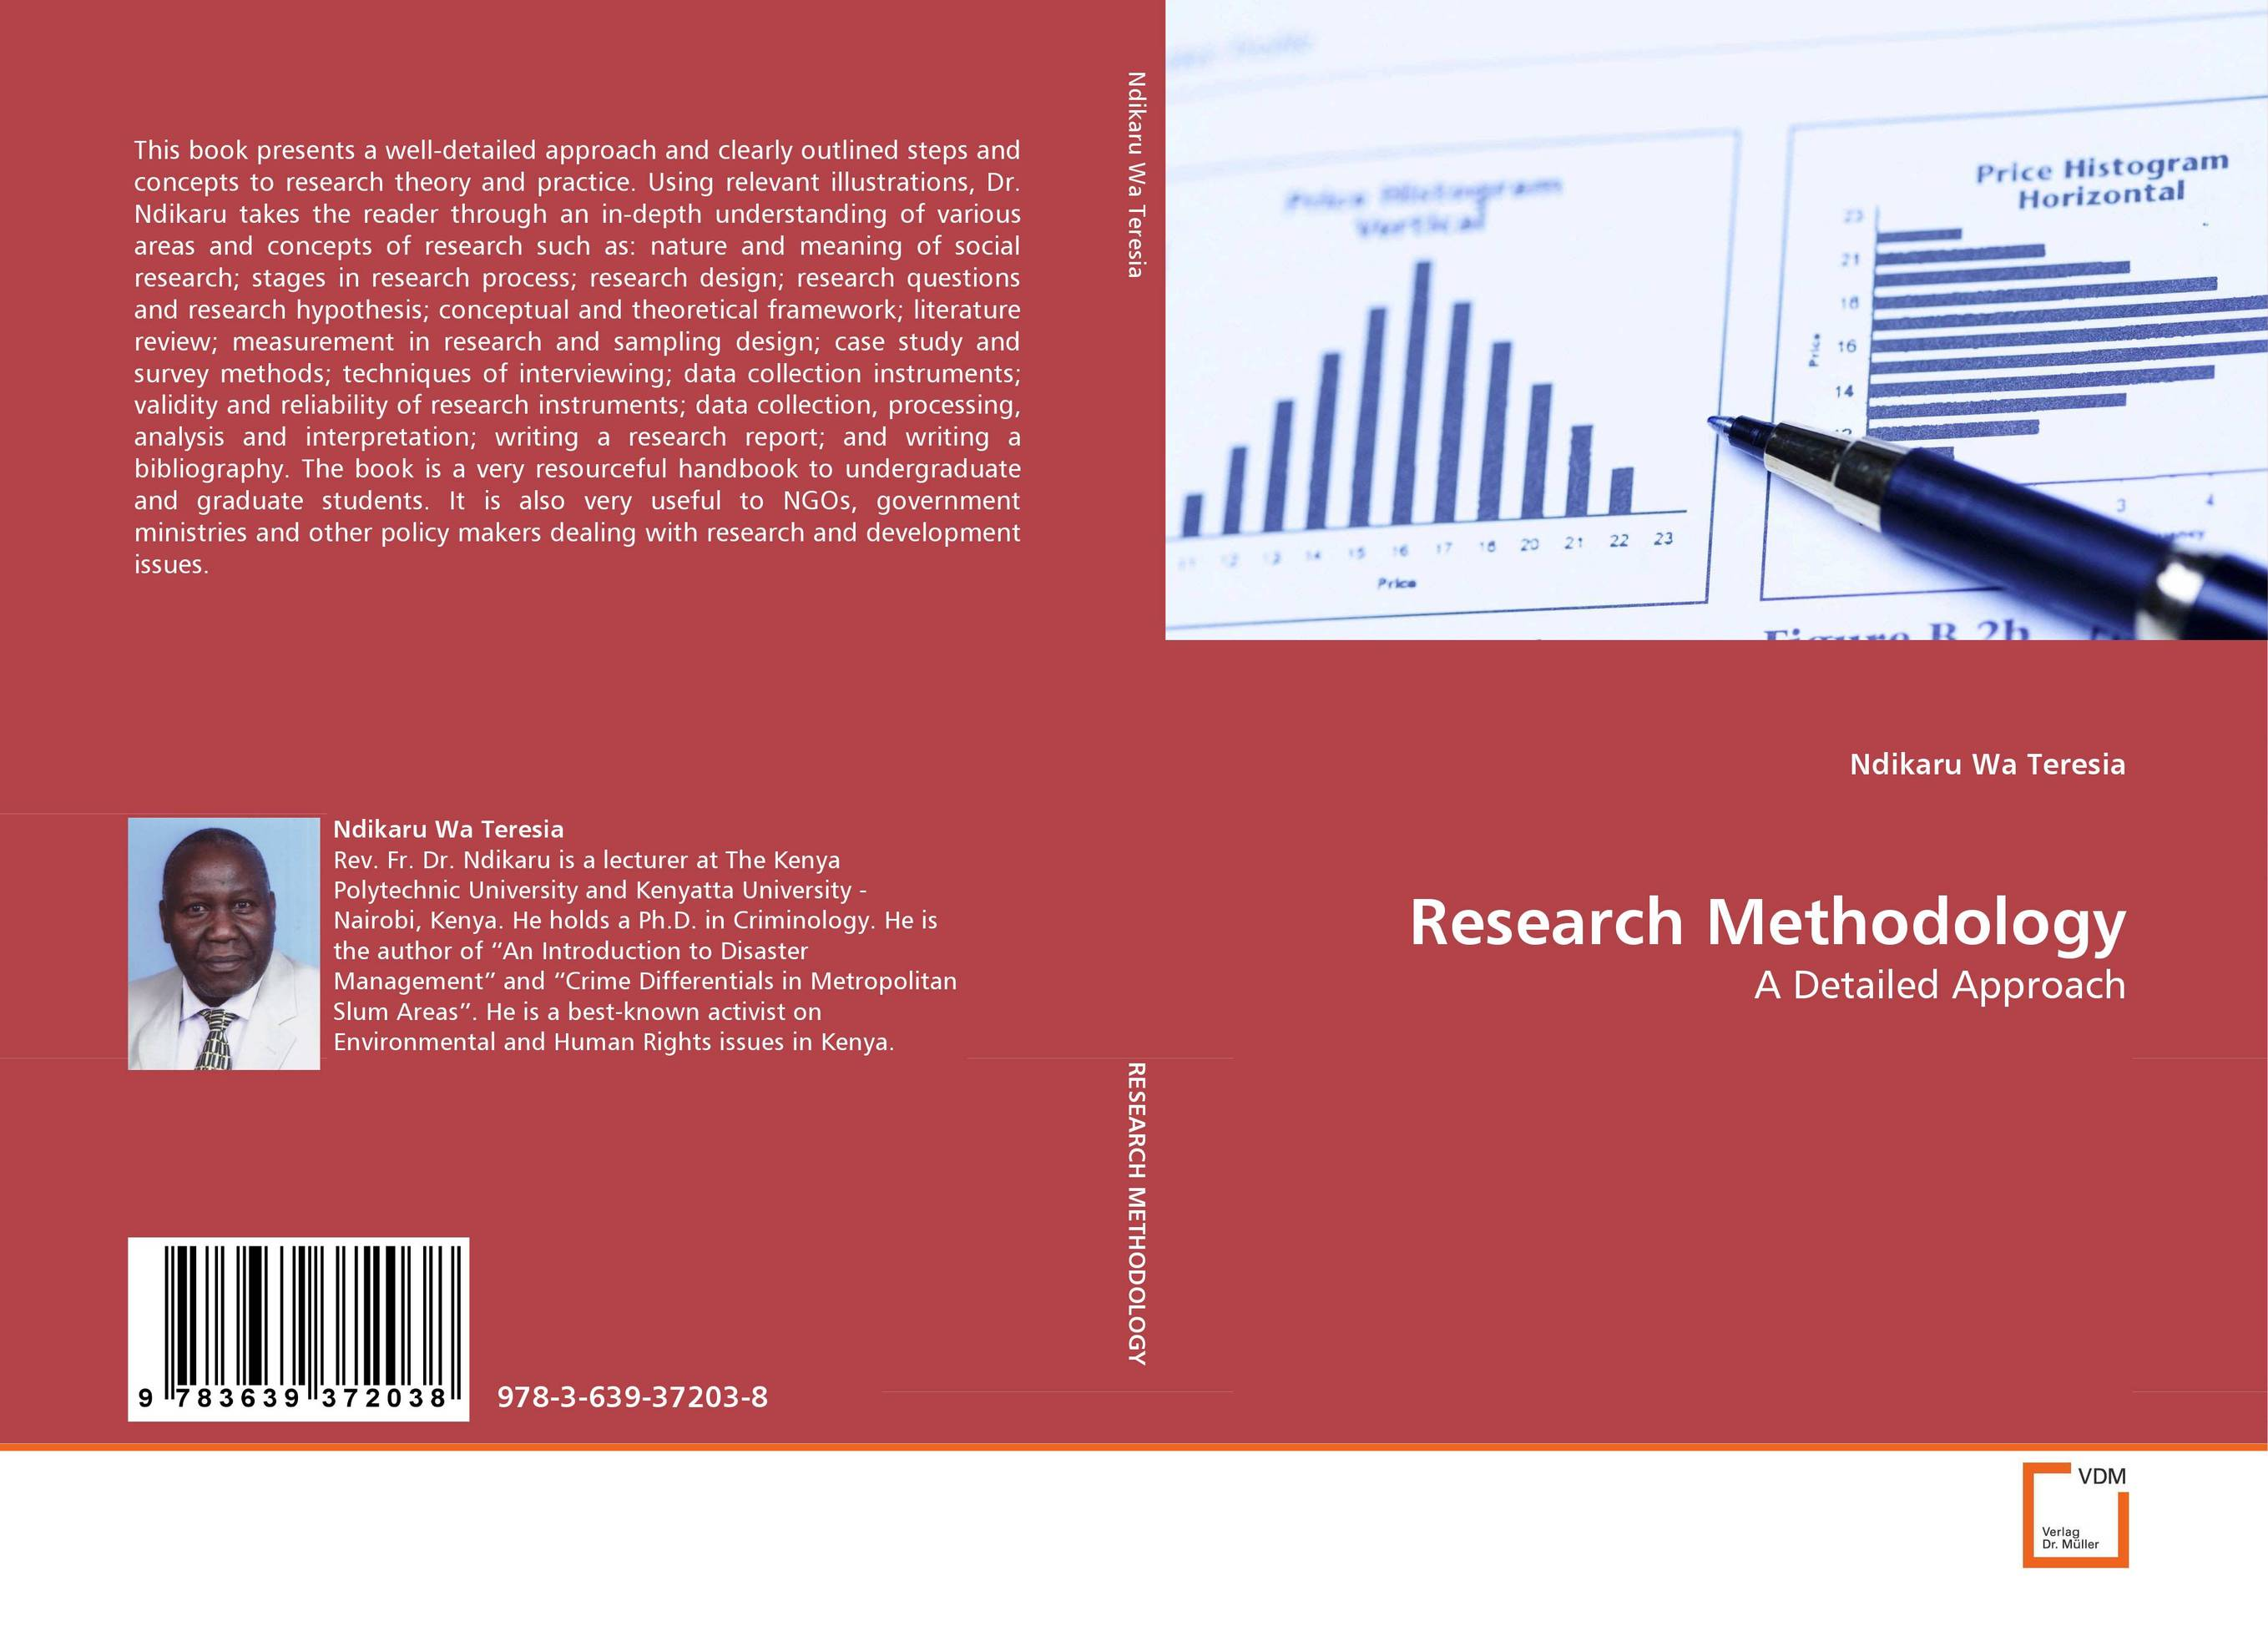 Research Methodology franke bibliotheca cardiologica ballistocardiogra phy research and computer diagnosis